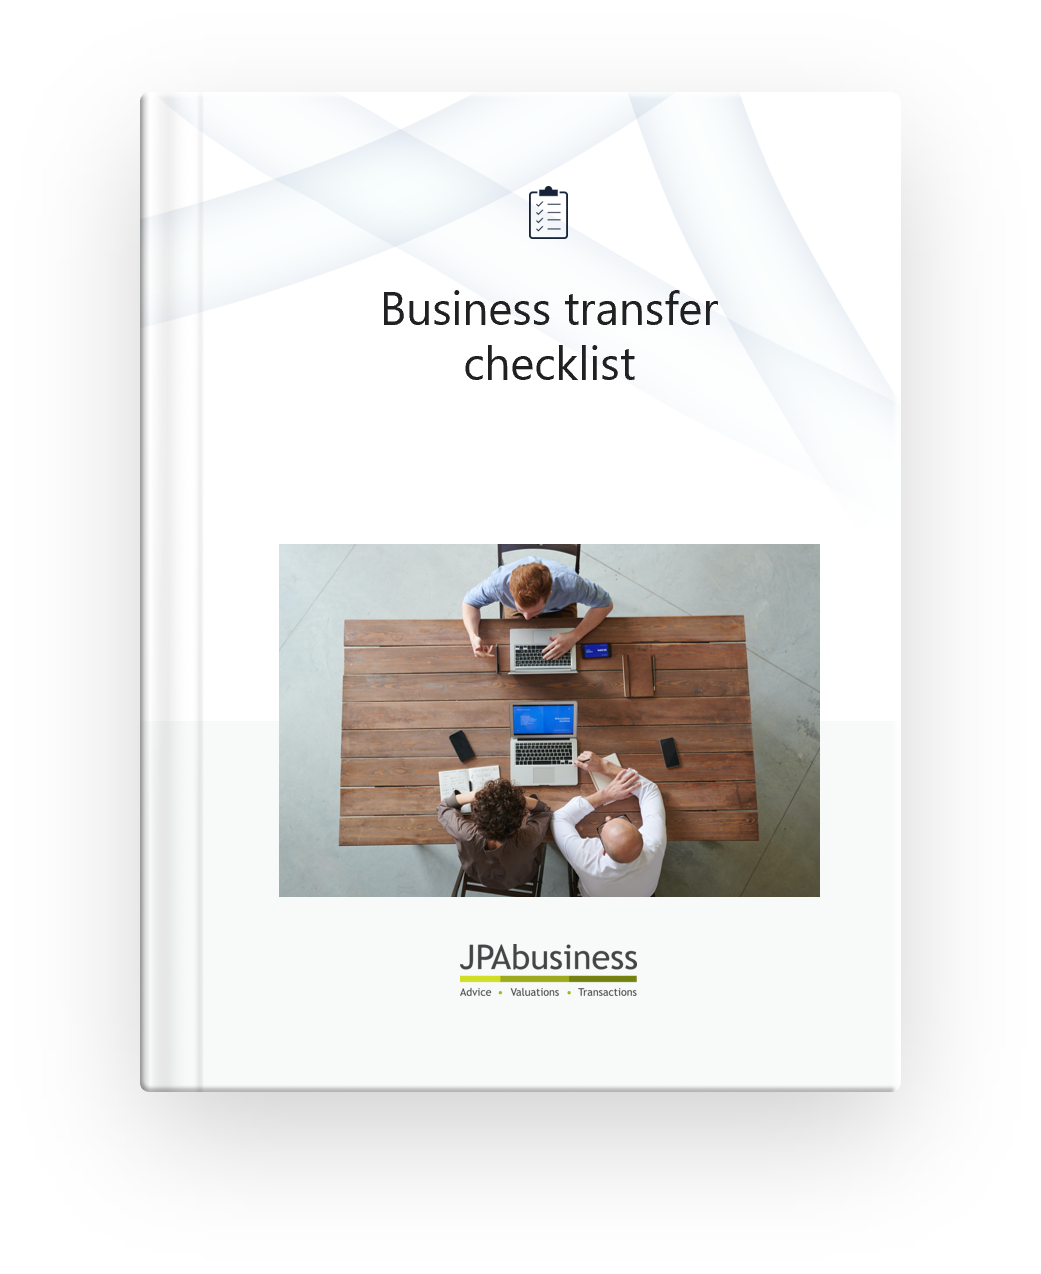 The_Business_Transfer_Checklist_JPAbusiness